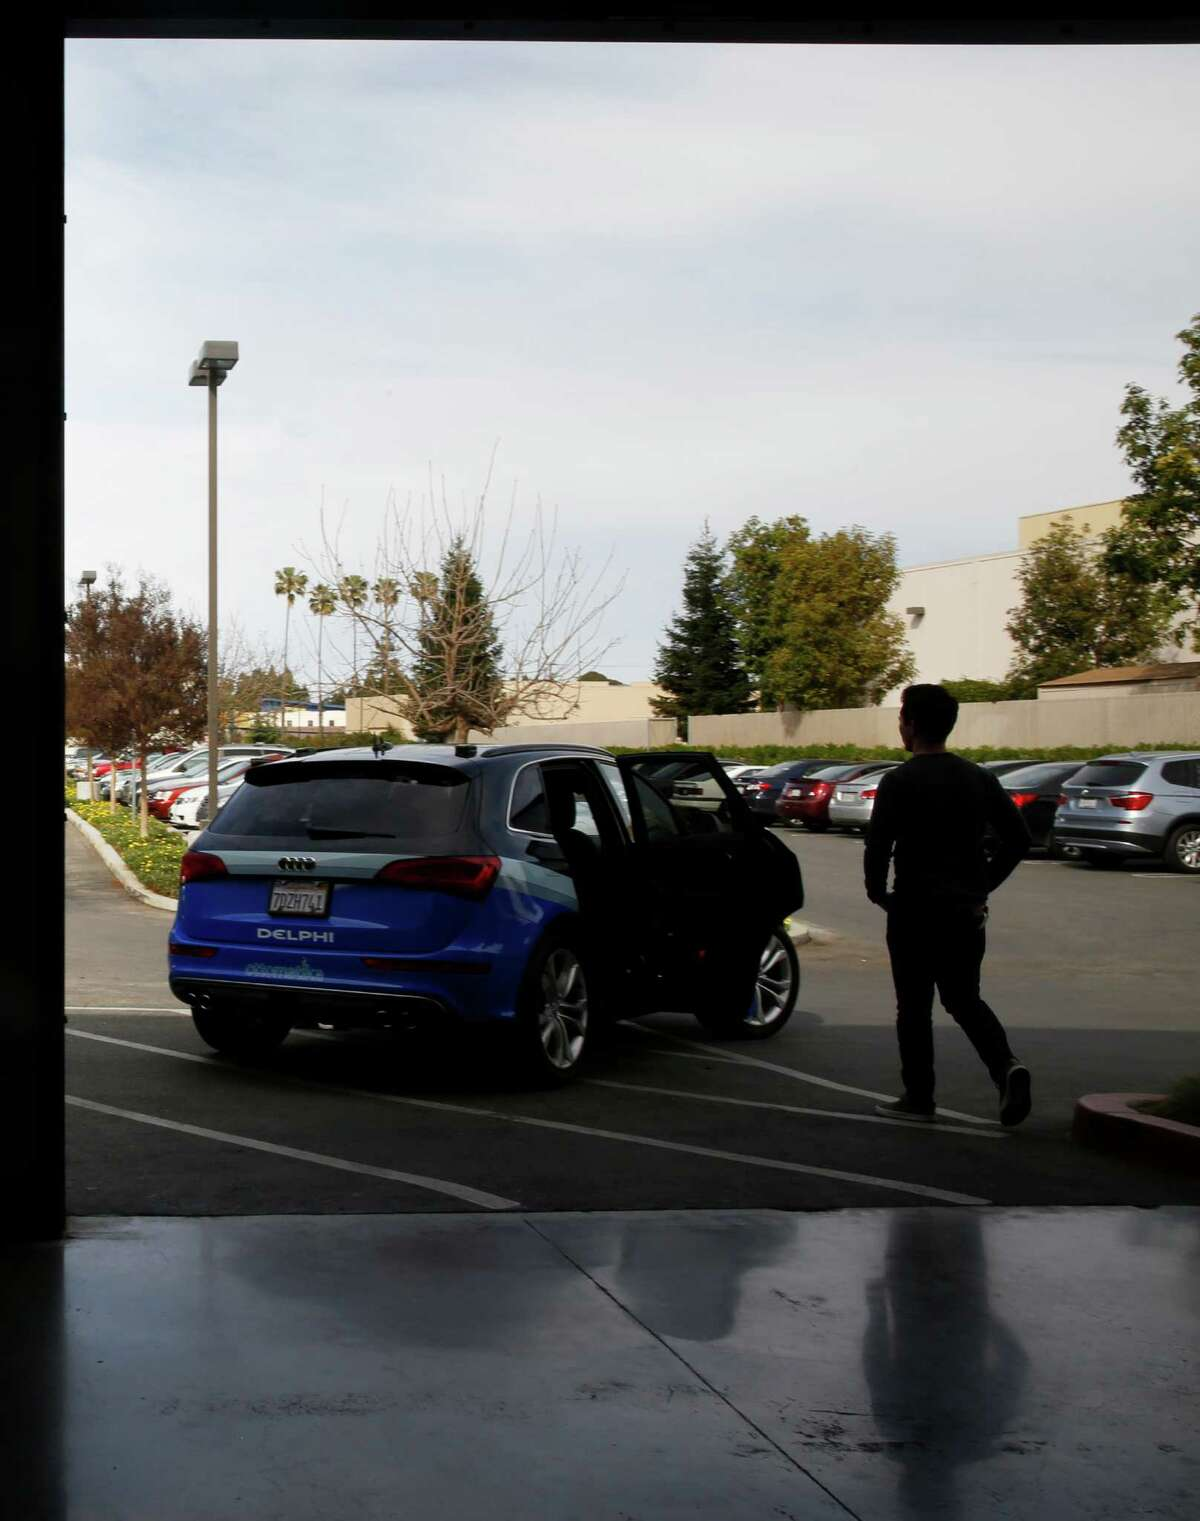 Delphi Lab @Silicon Valley in Mountain View, California show the car being sent on a driverless cross-country road trip on Friday, March 20, 2015.